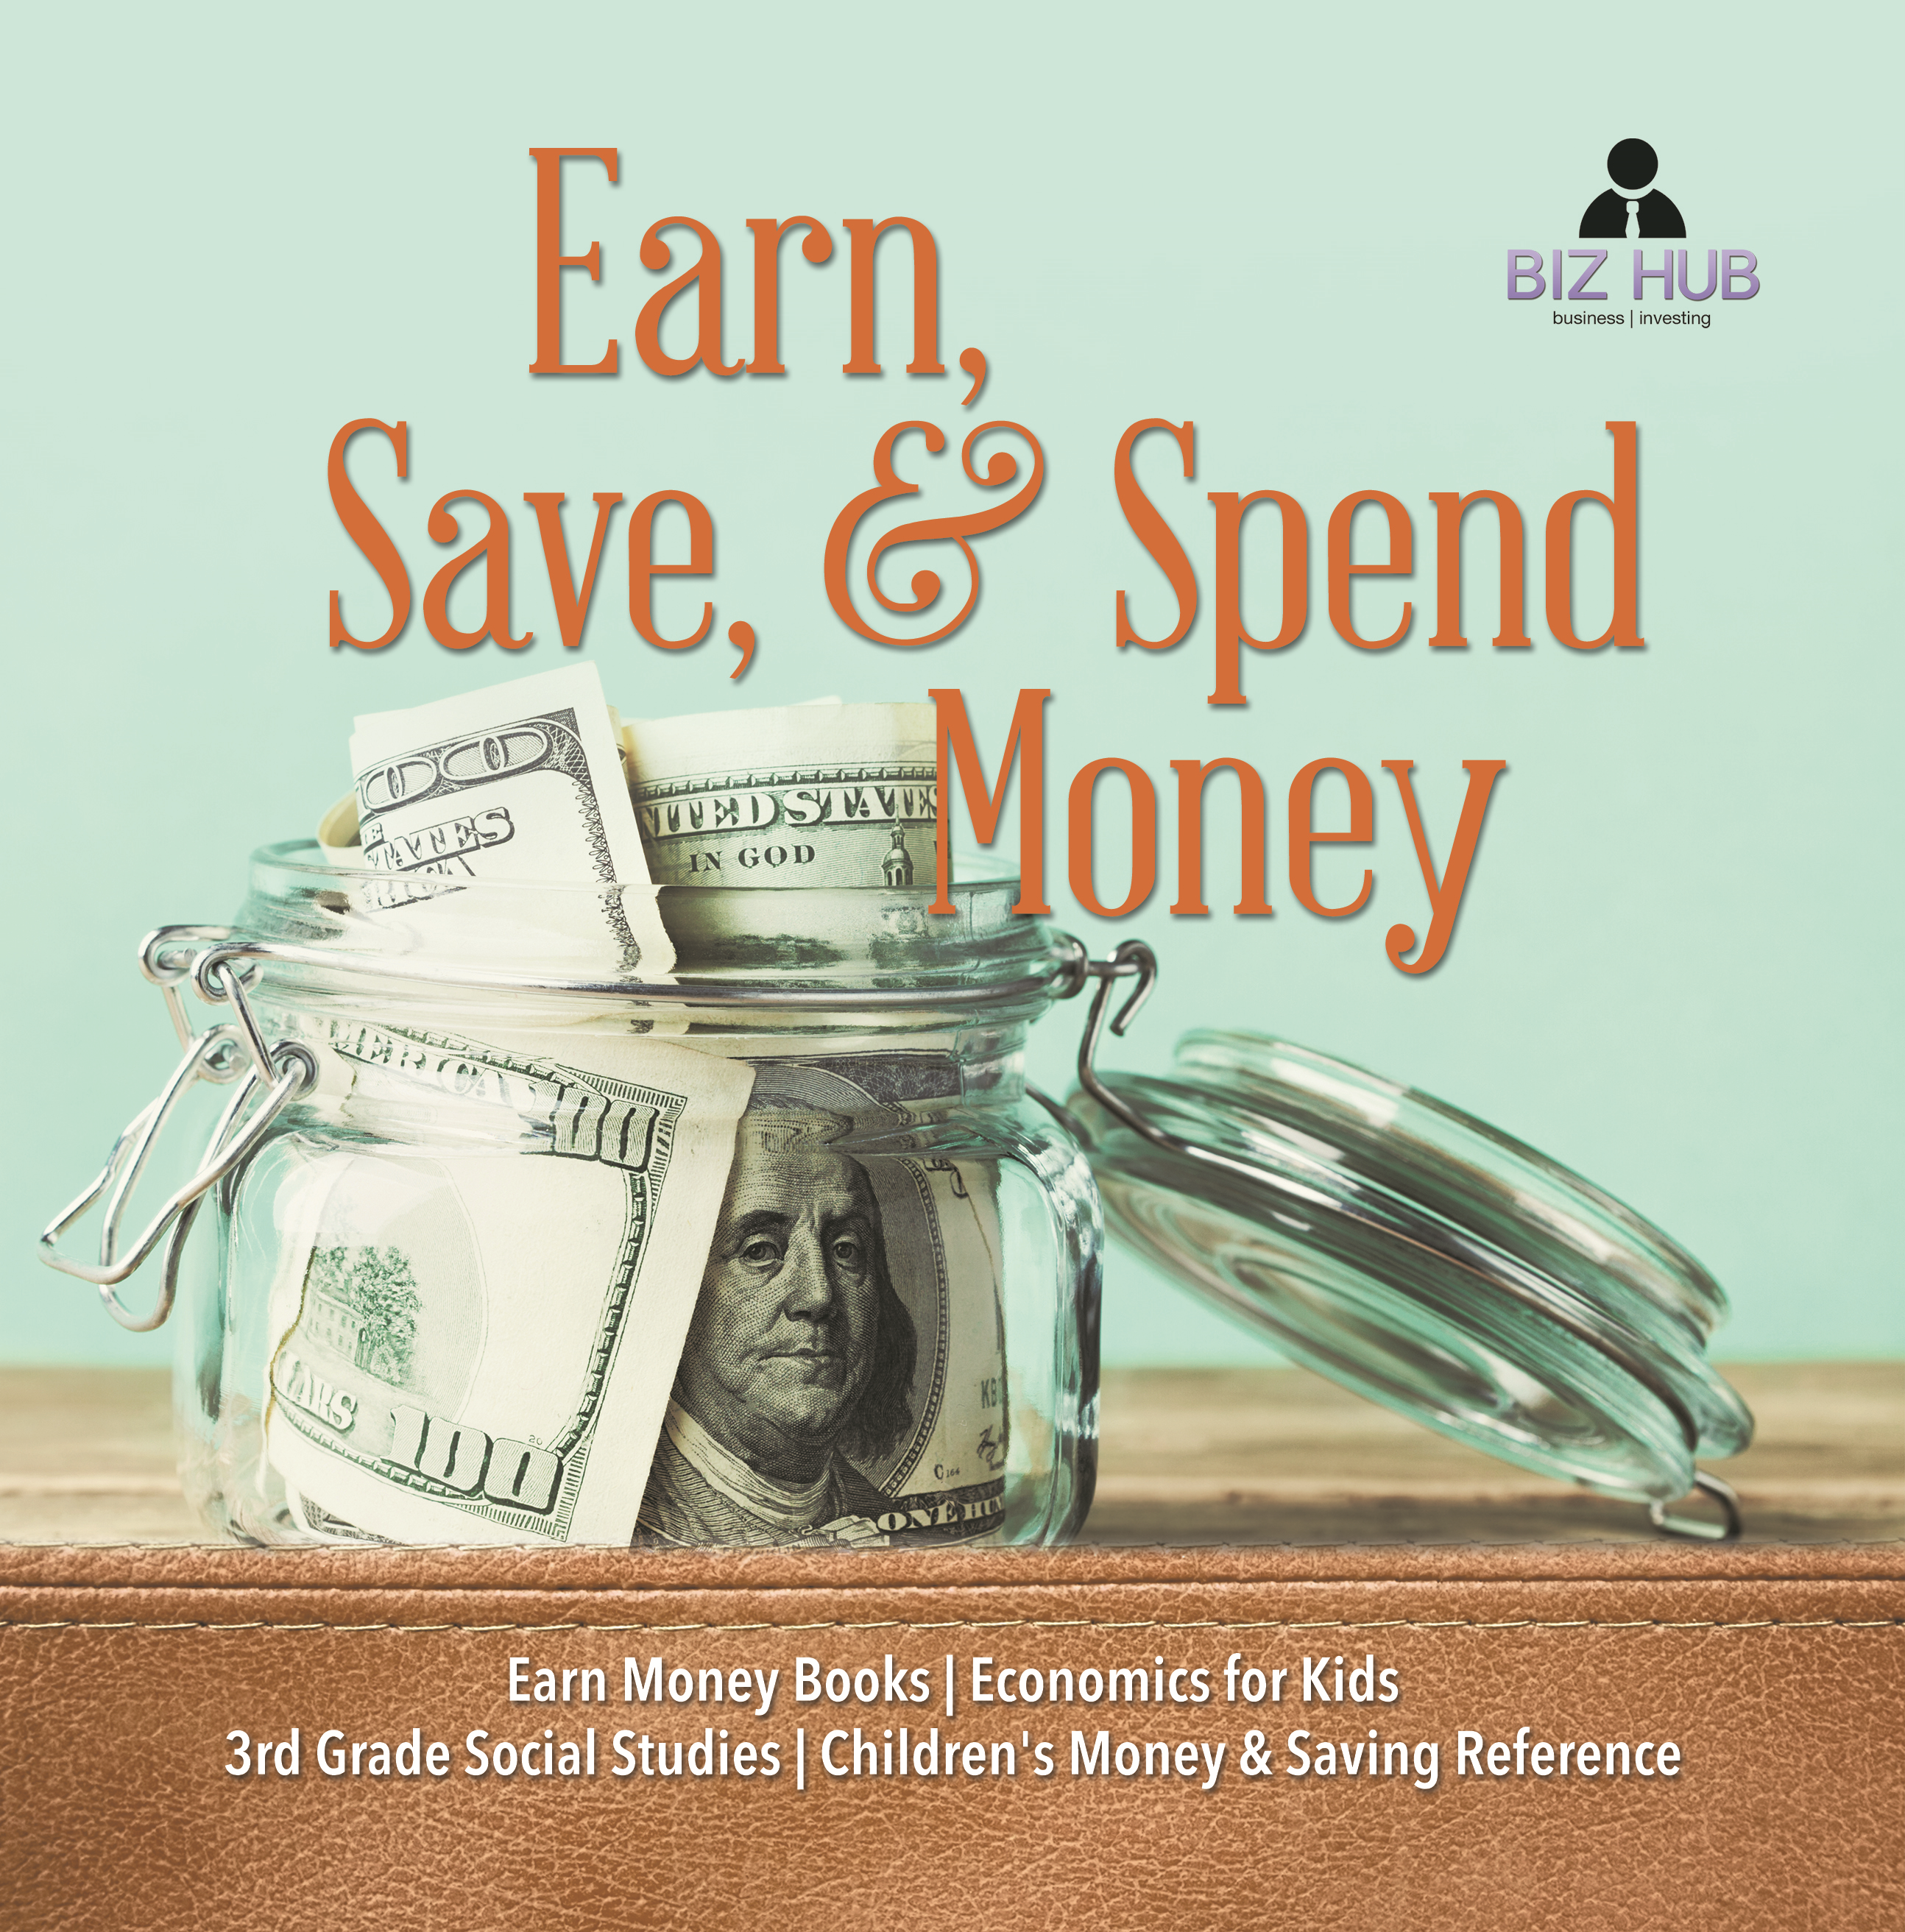 Earn, Save, & Spend Money | Earn Money Books | Economics for Kids | 3rd Grade Social Studies | Children's Money & Saving Reference